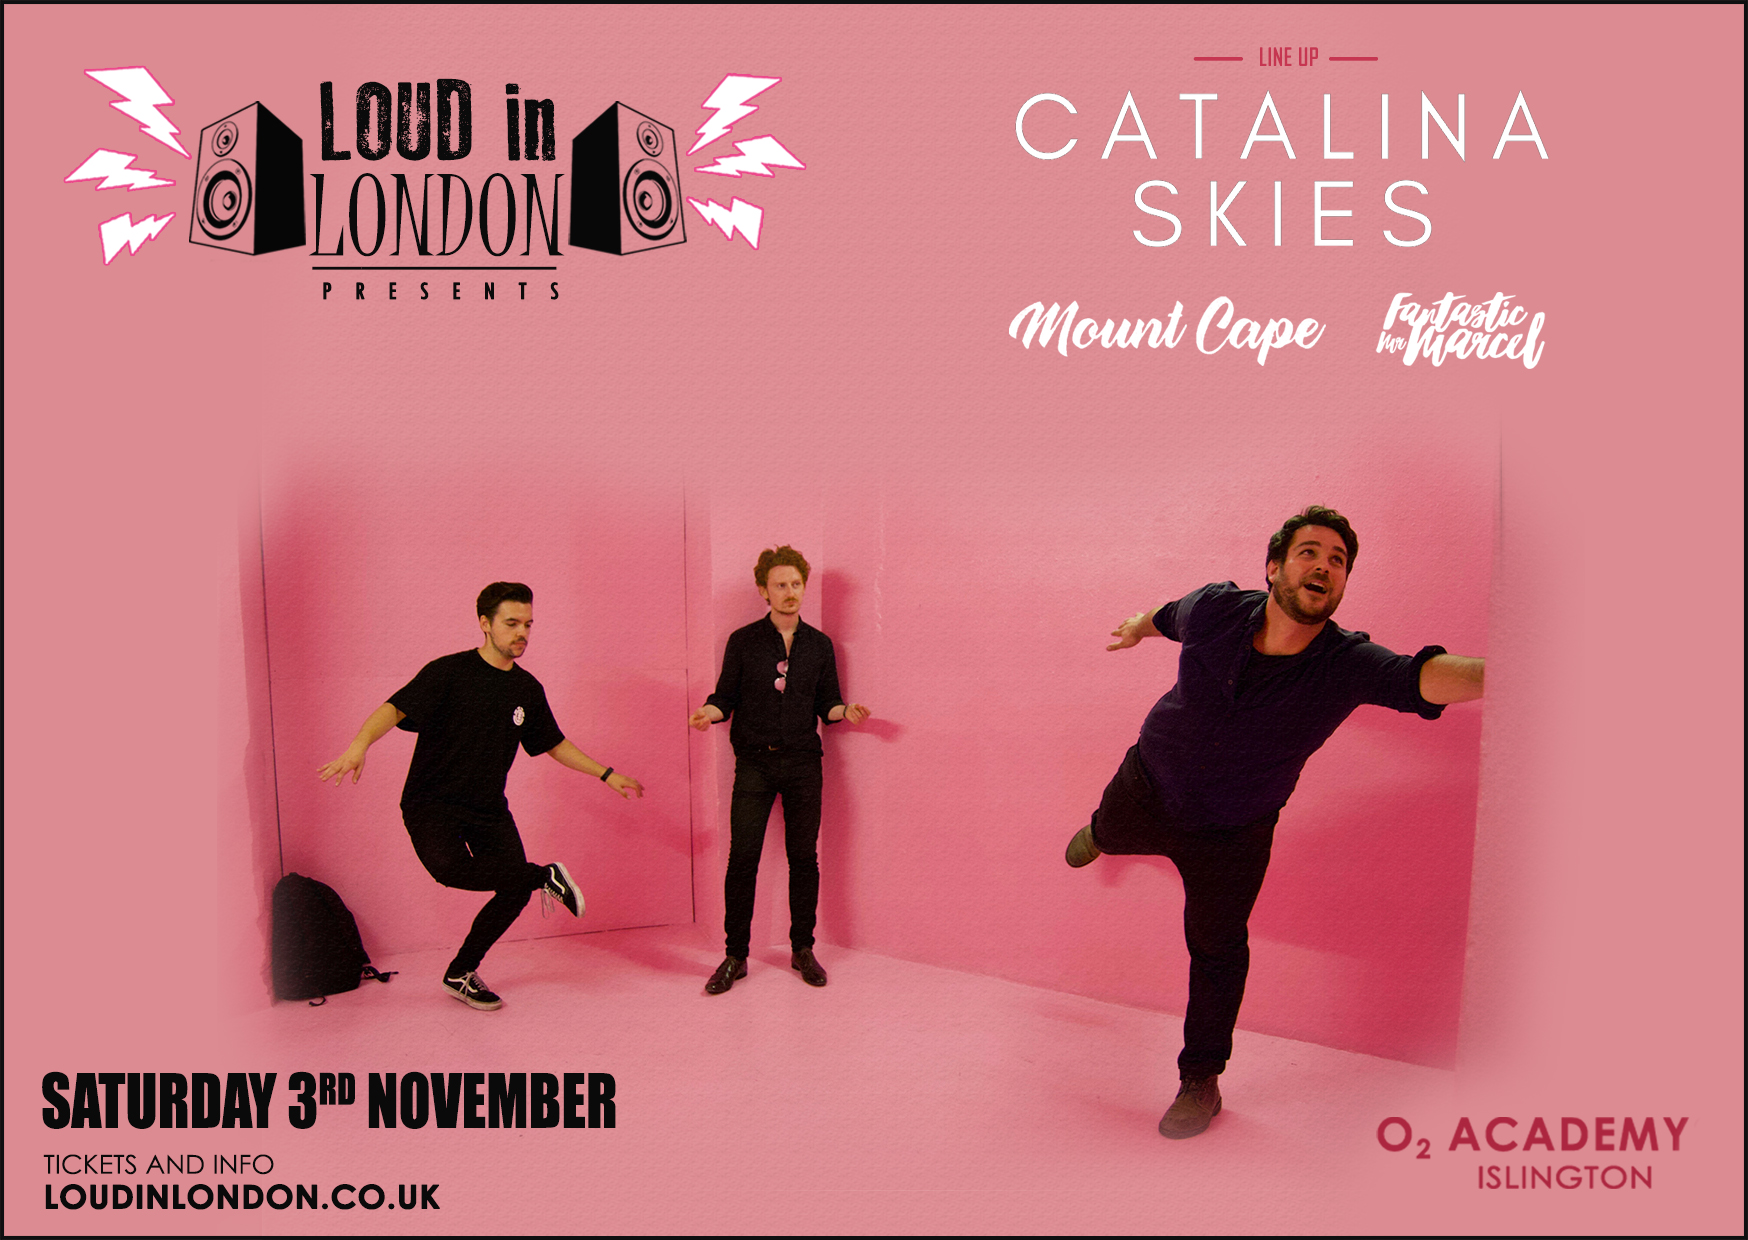 Loud in London - 3NOV o2 LS flyer.jpg